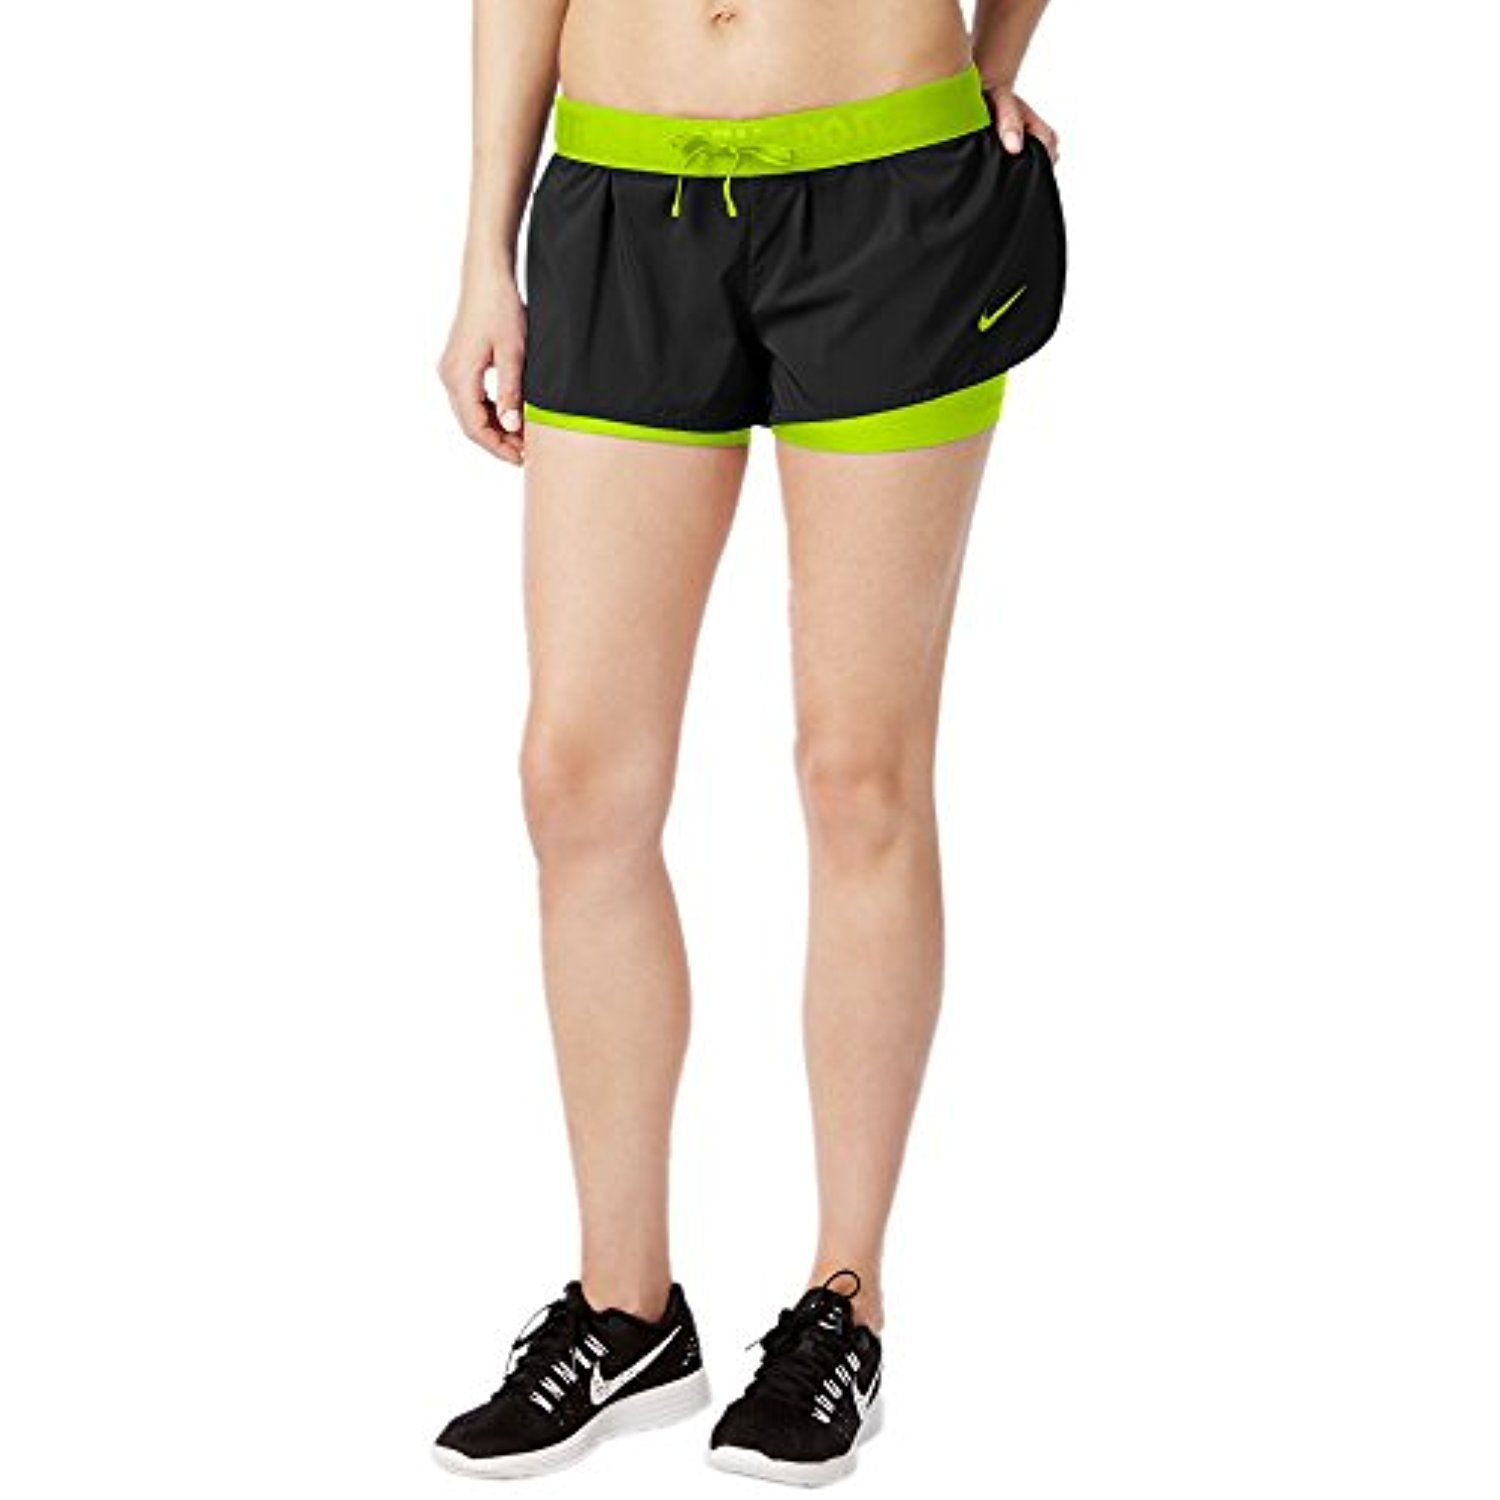 1031b6c6c186 Nike Full Flex 2 in 1 2.0 Short -- Visit the image link more details. (This  is an affiliate link)  Clothing